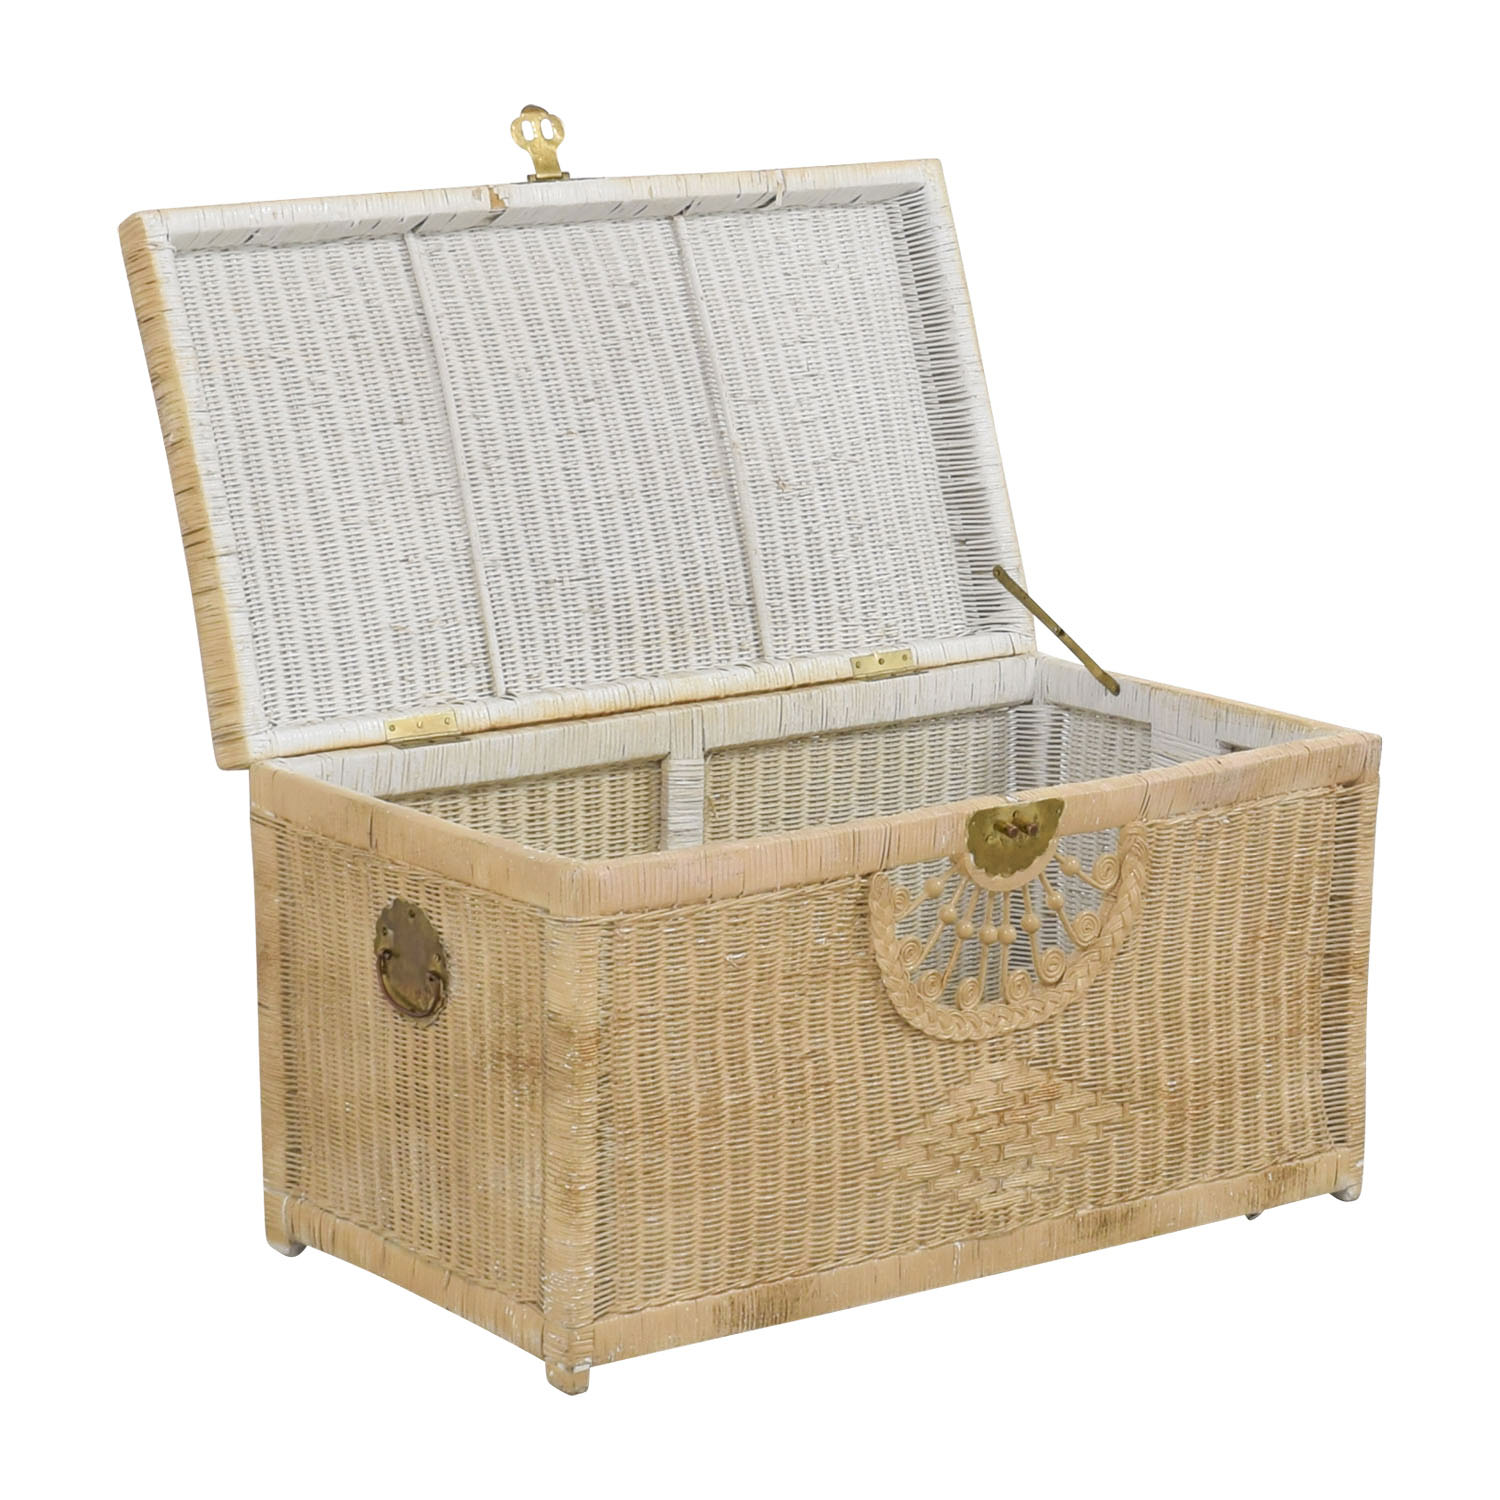 Pier 1 Imports Pier 1 Imports Natural Wicker Trunk for sale